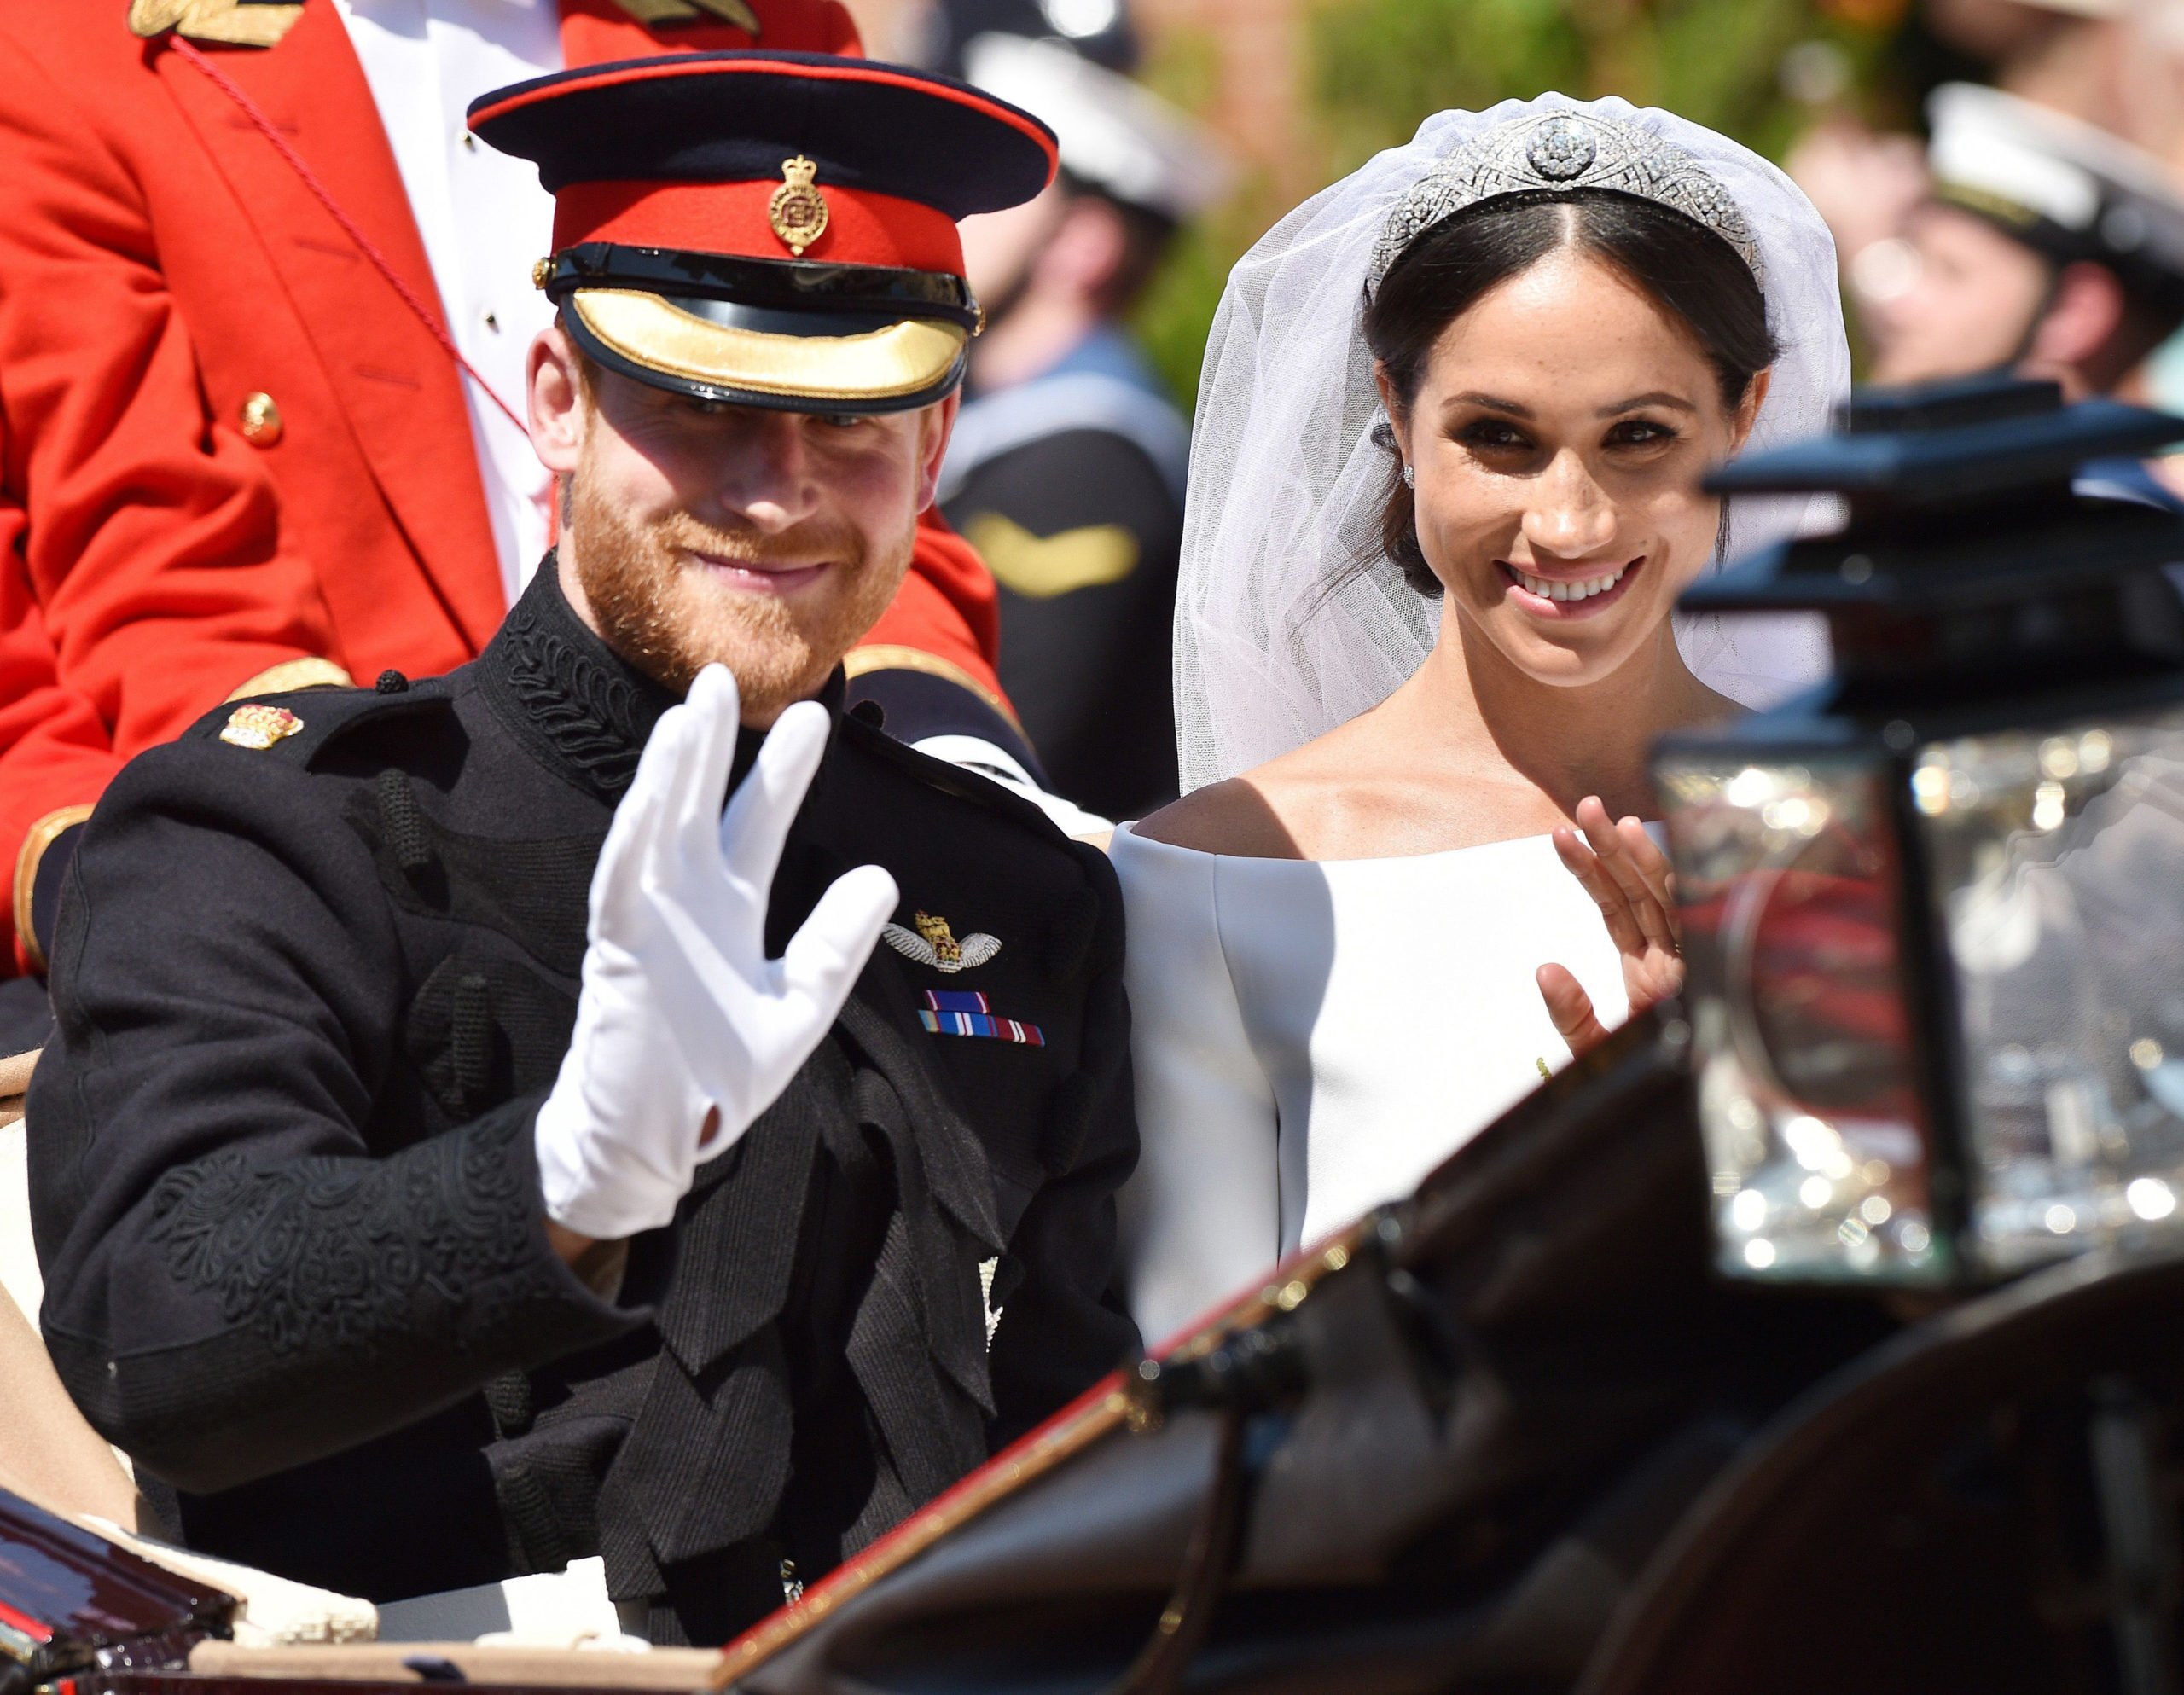 Meghan Markle wedding (Credit: Splash News)